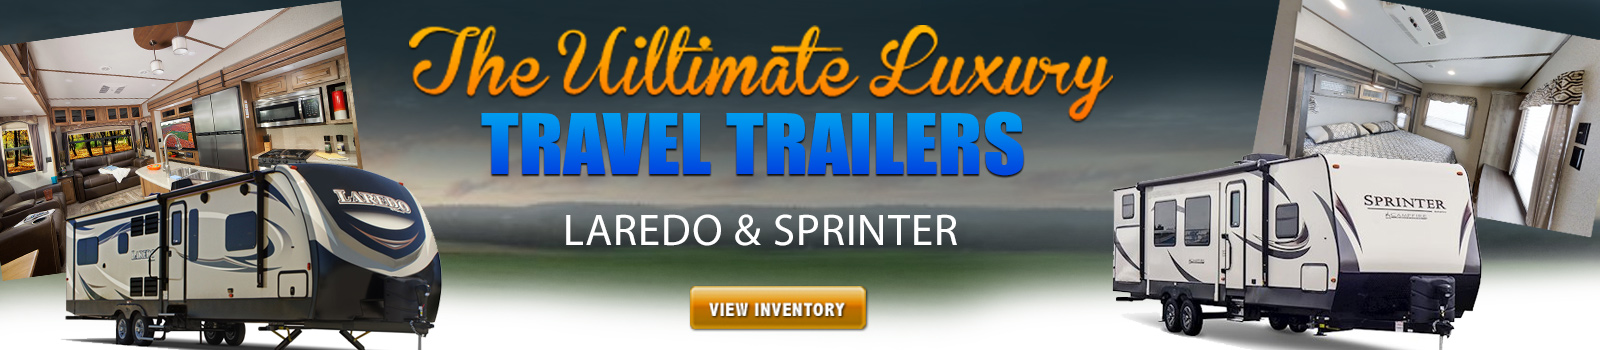 Luxury Travel Trailers